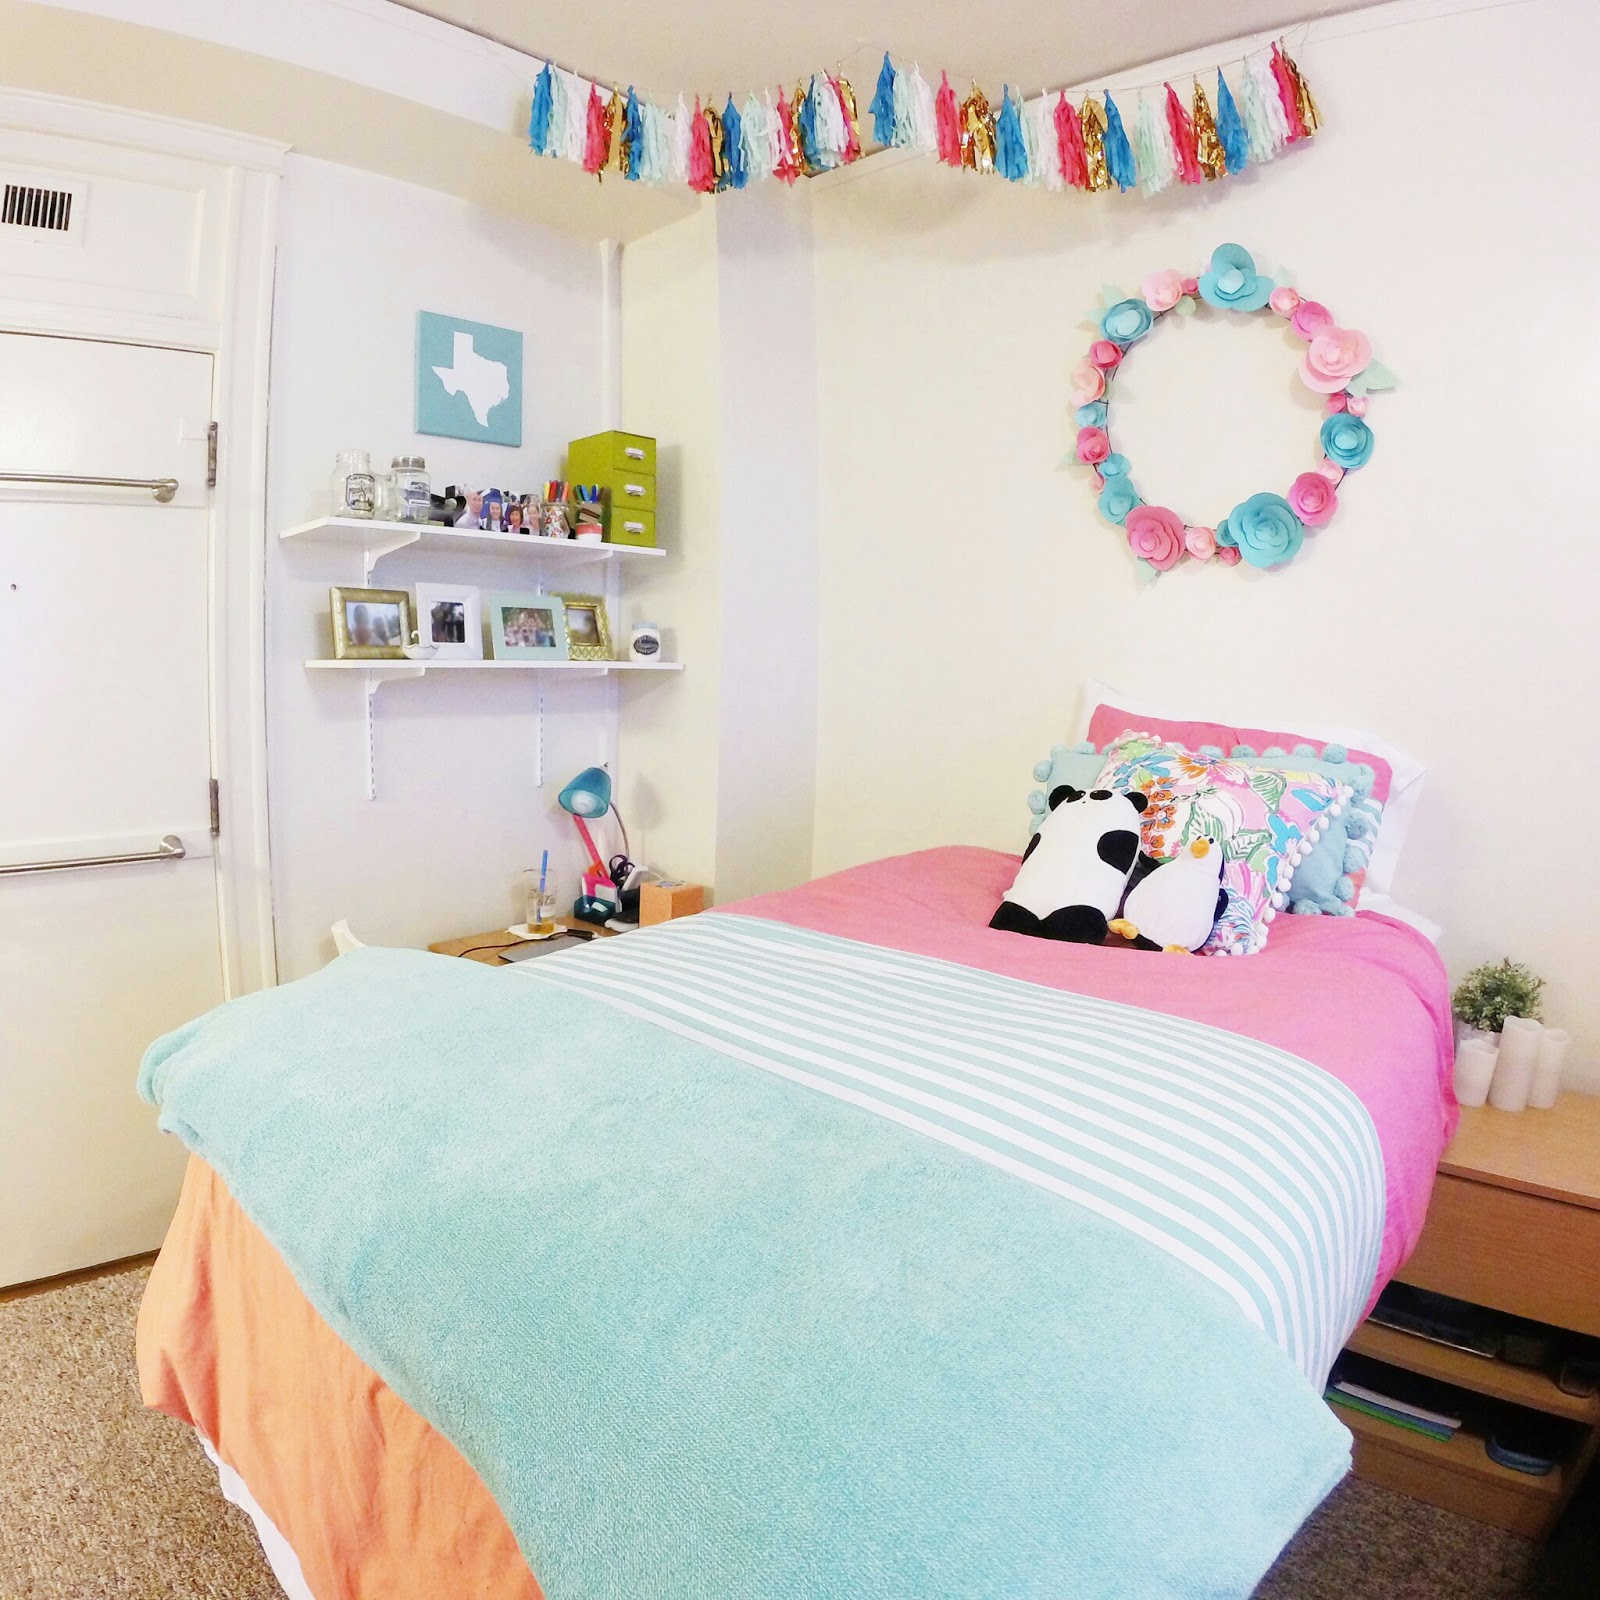 10 Dorm Living Tips | The Bella Insider